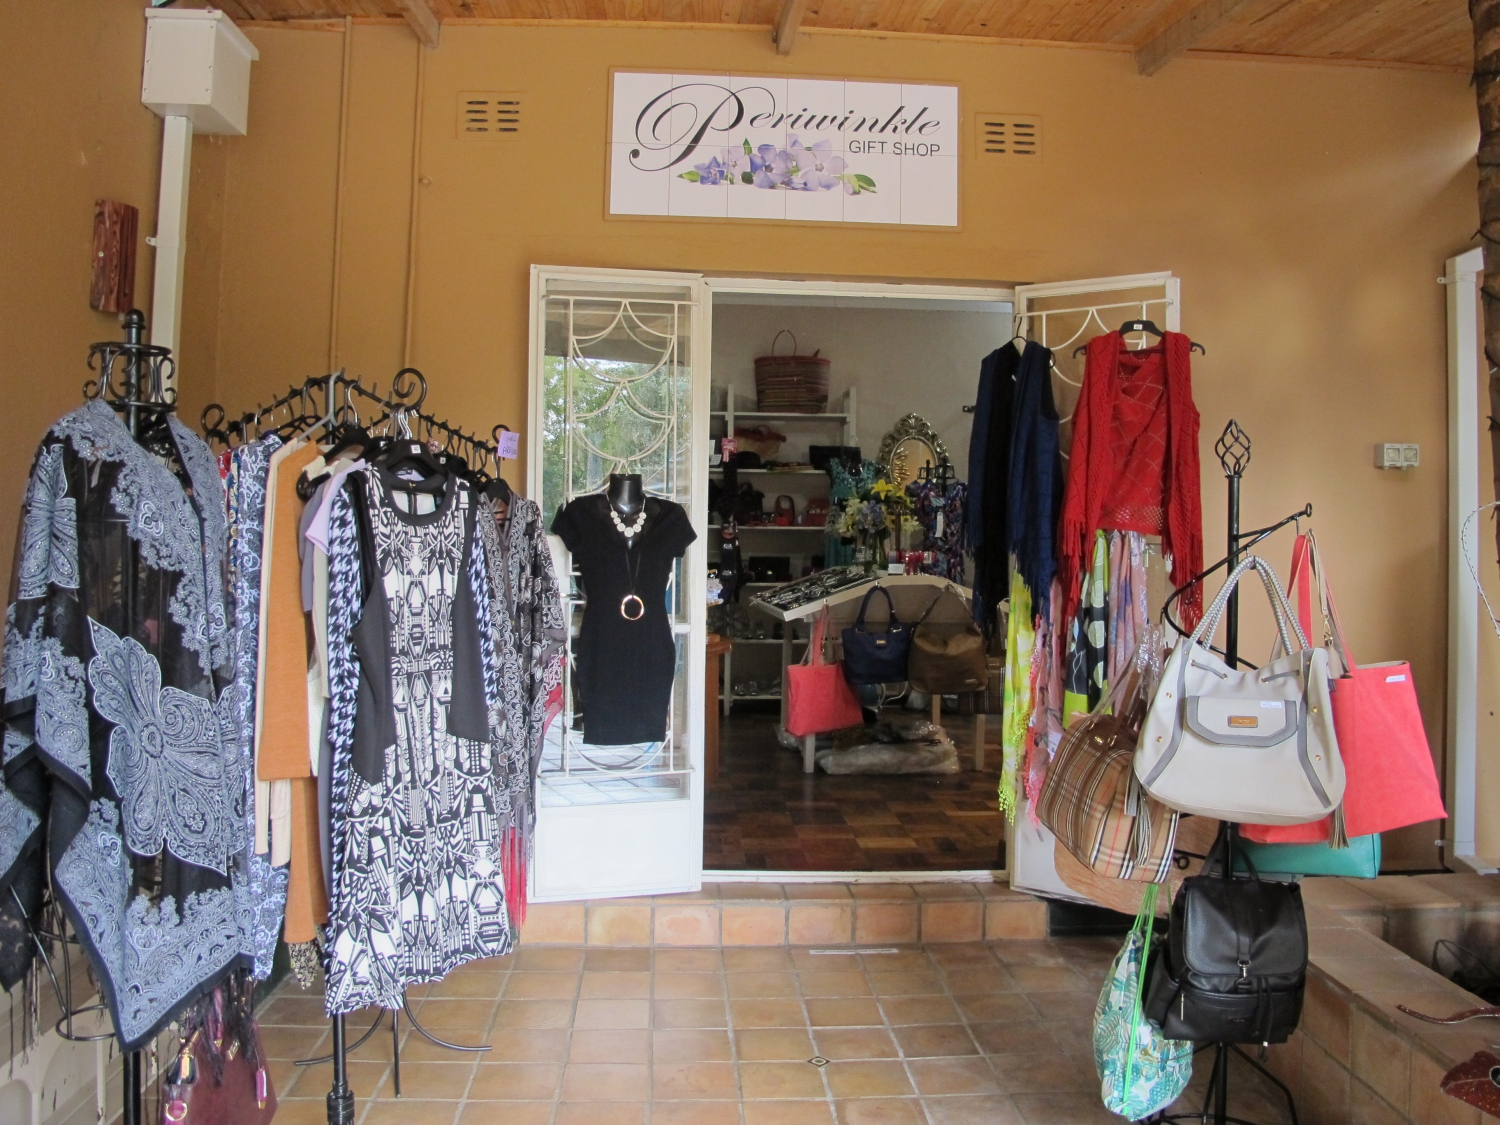 Periwinkle Gift Shop